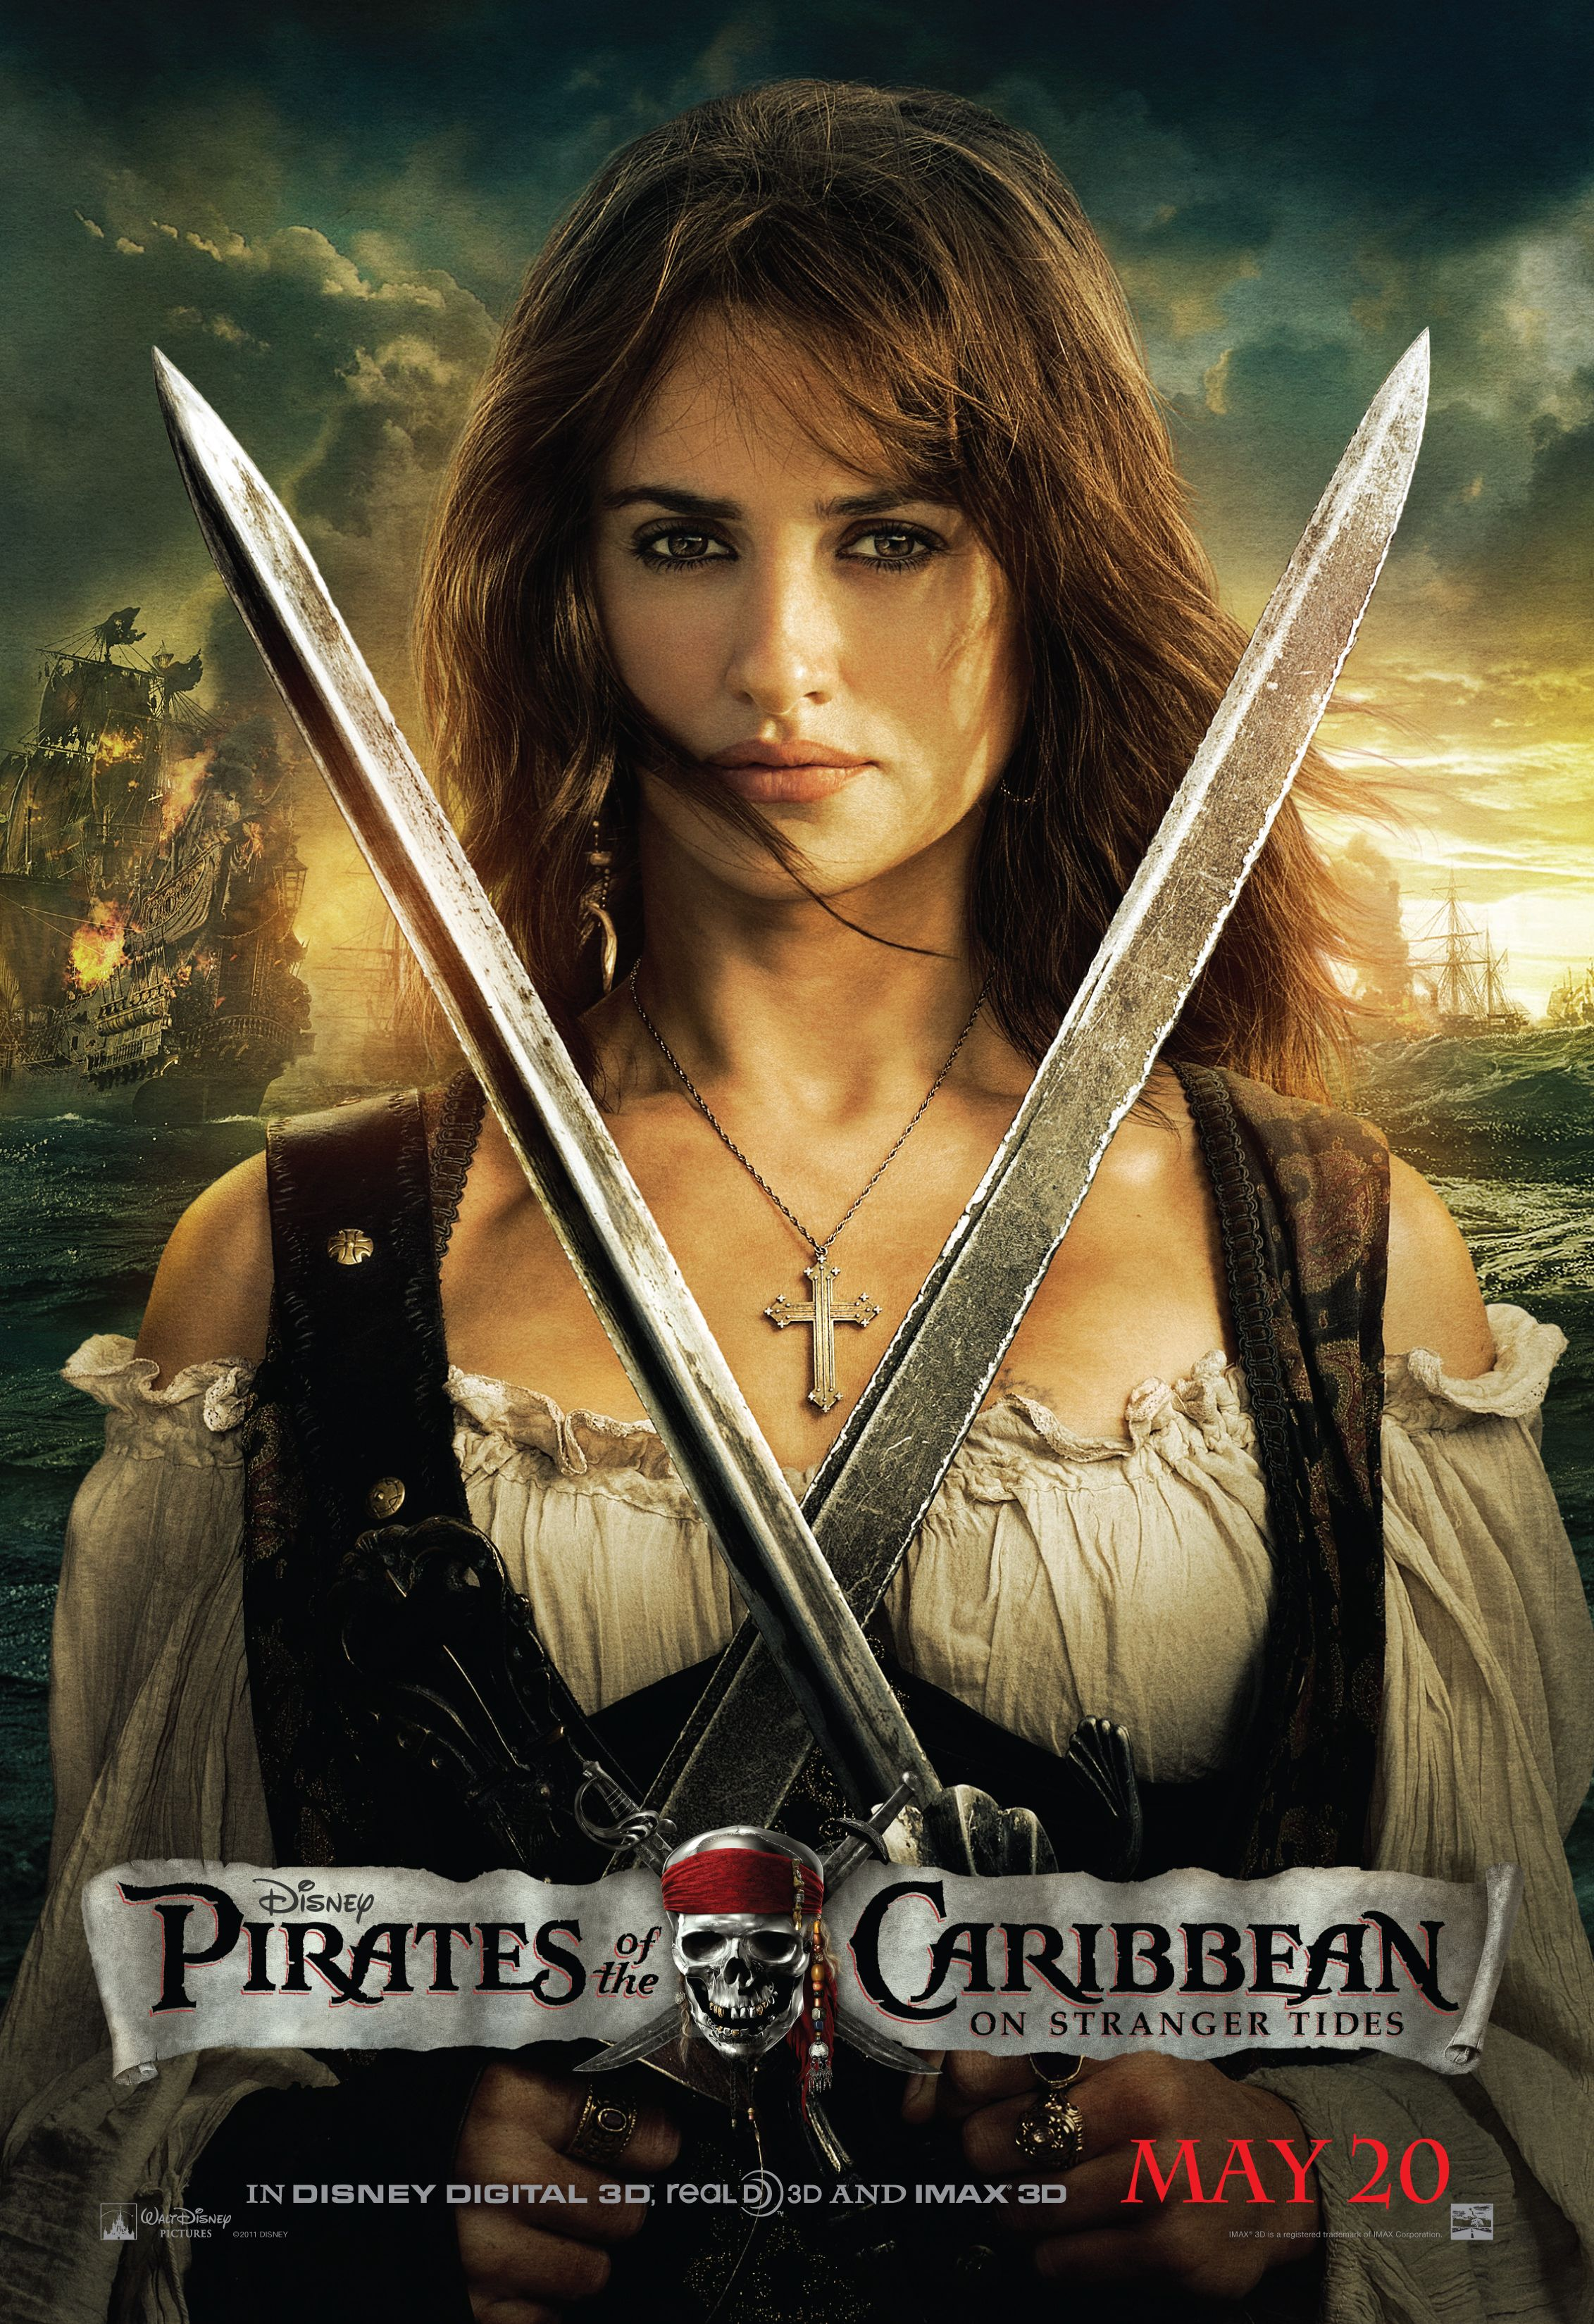 PIRATES OF THE CARIBBE... Penelope Cruz Movies